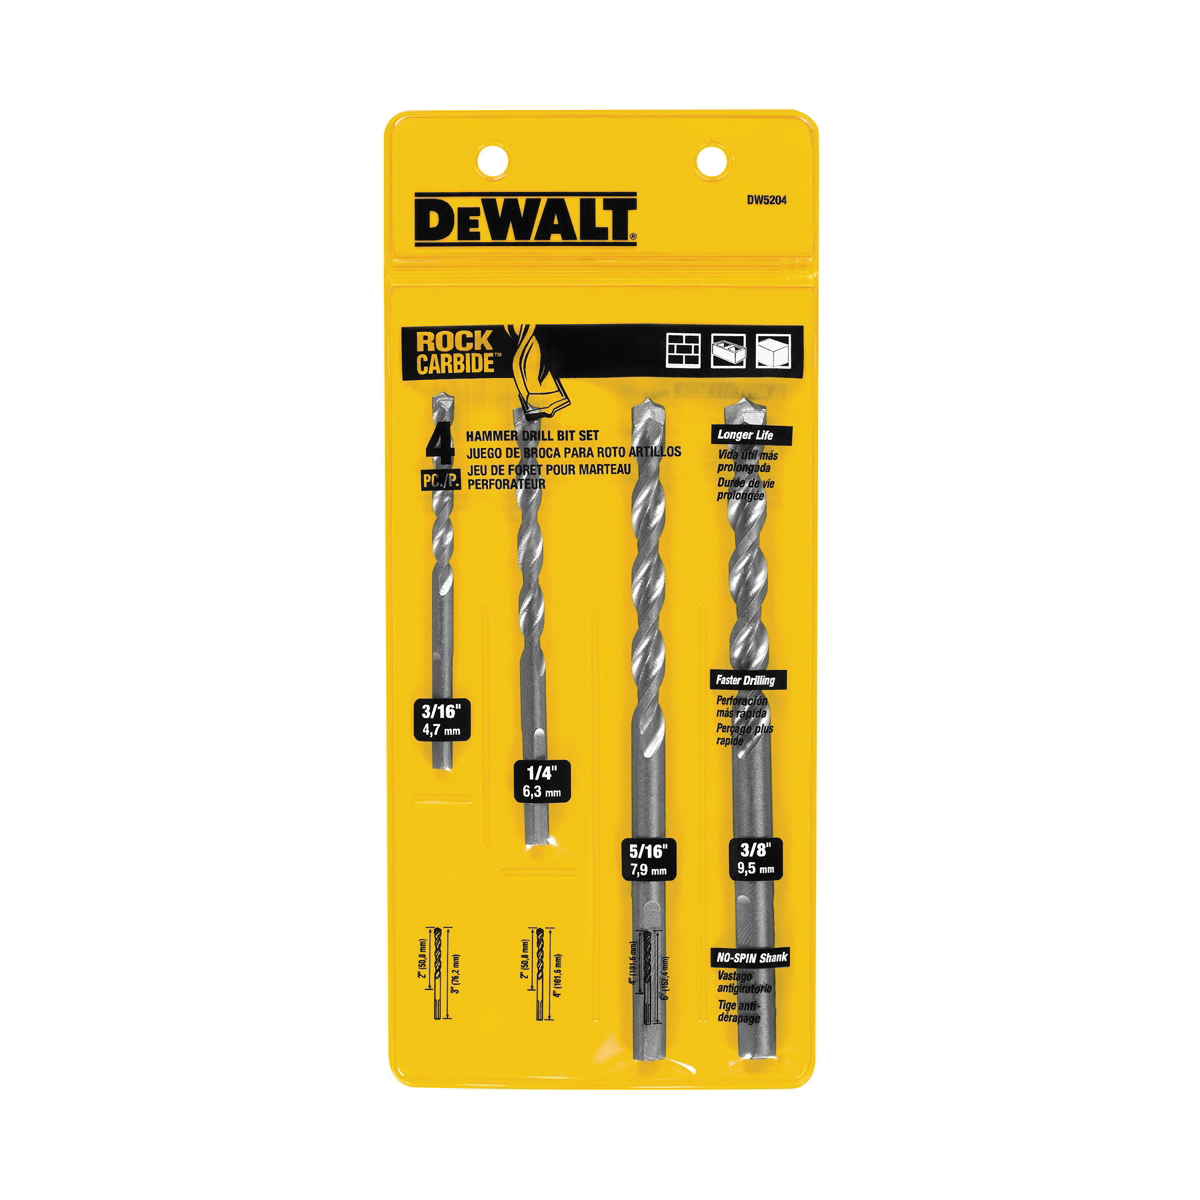 Black+Decker® DW5207 Premium Percussion Hammer Drill Bit Set, 3/16 in Min Drill Bit, 1/2 in Max Drill Bit, 7 Pieces, For Use With All Brands Electric and Cordless Hammer Drills Including DeWALT®, Bosch® and Hilti®, Carbide Tip, Bright